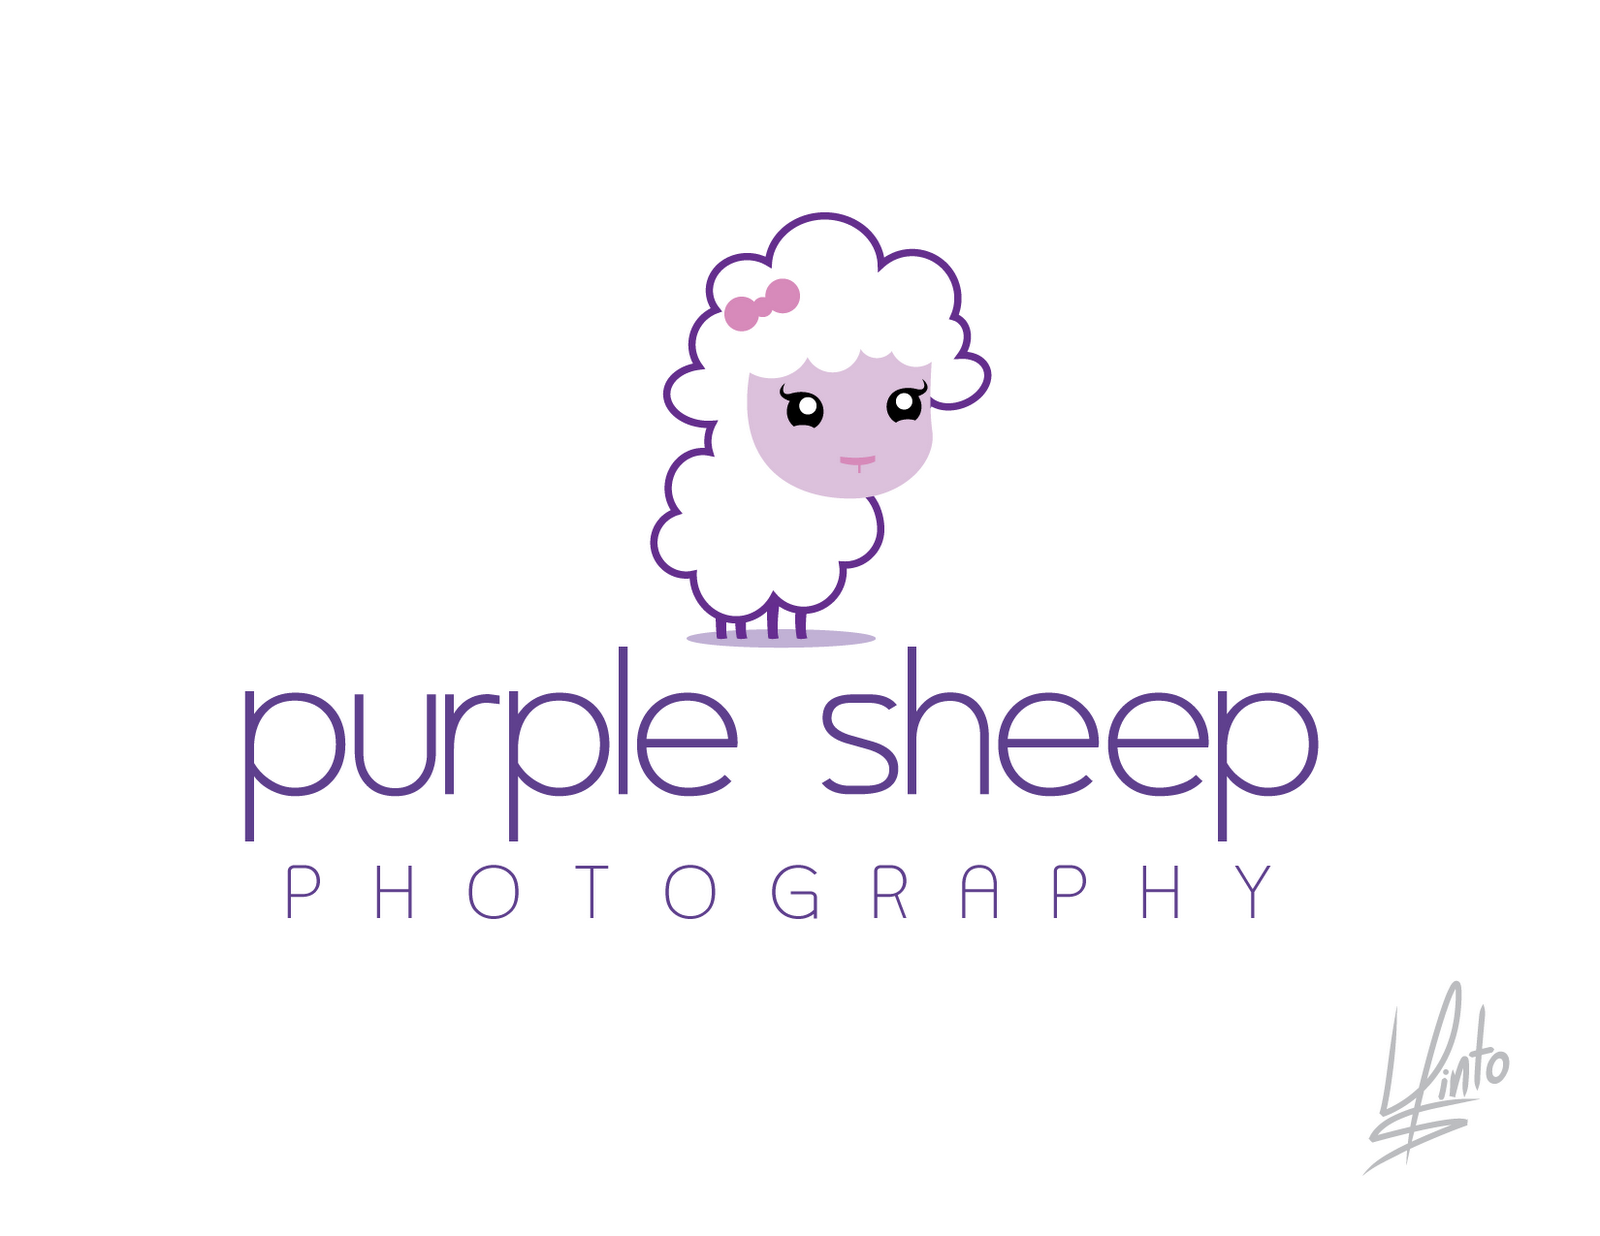 Character Design Logo : Luis pinto arte y diseño purple sheep photography logo